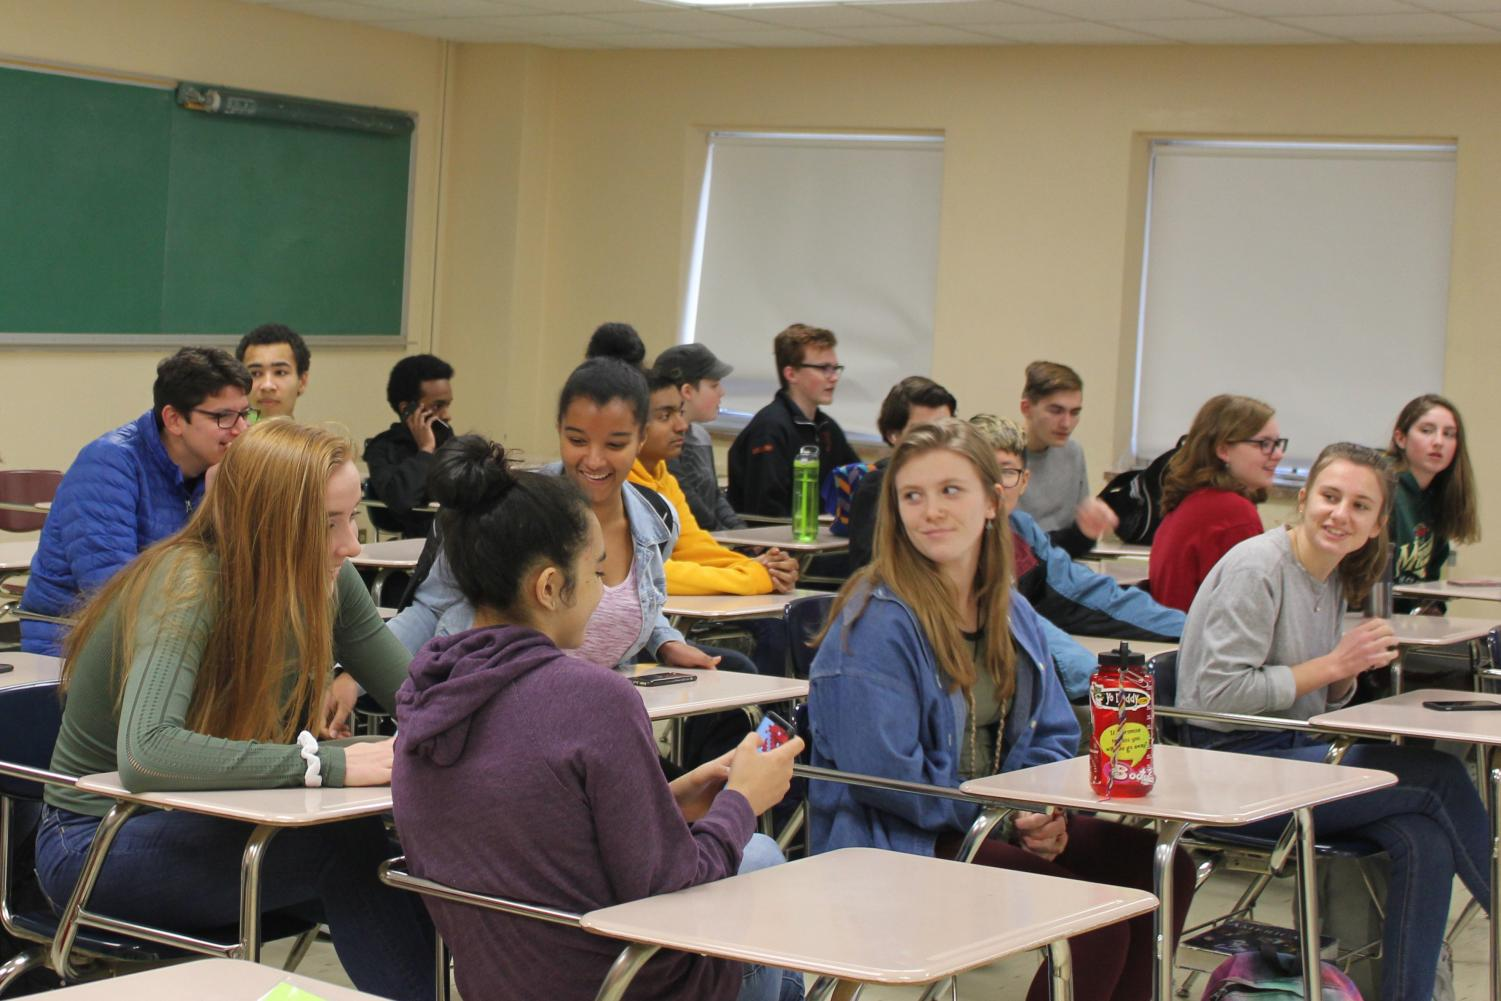 Students wait for AP U.S. history class to begin third hour Tues. Nov. 21. Third hour experienced an influx of students due to schedule changes.